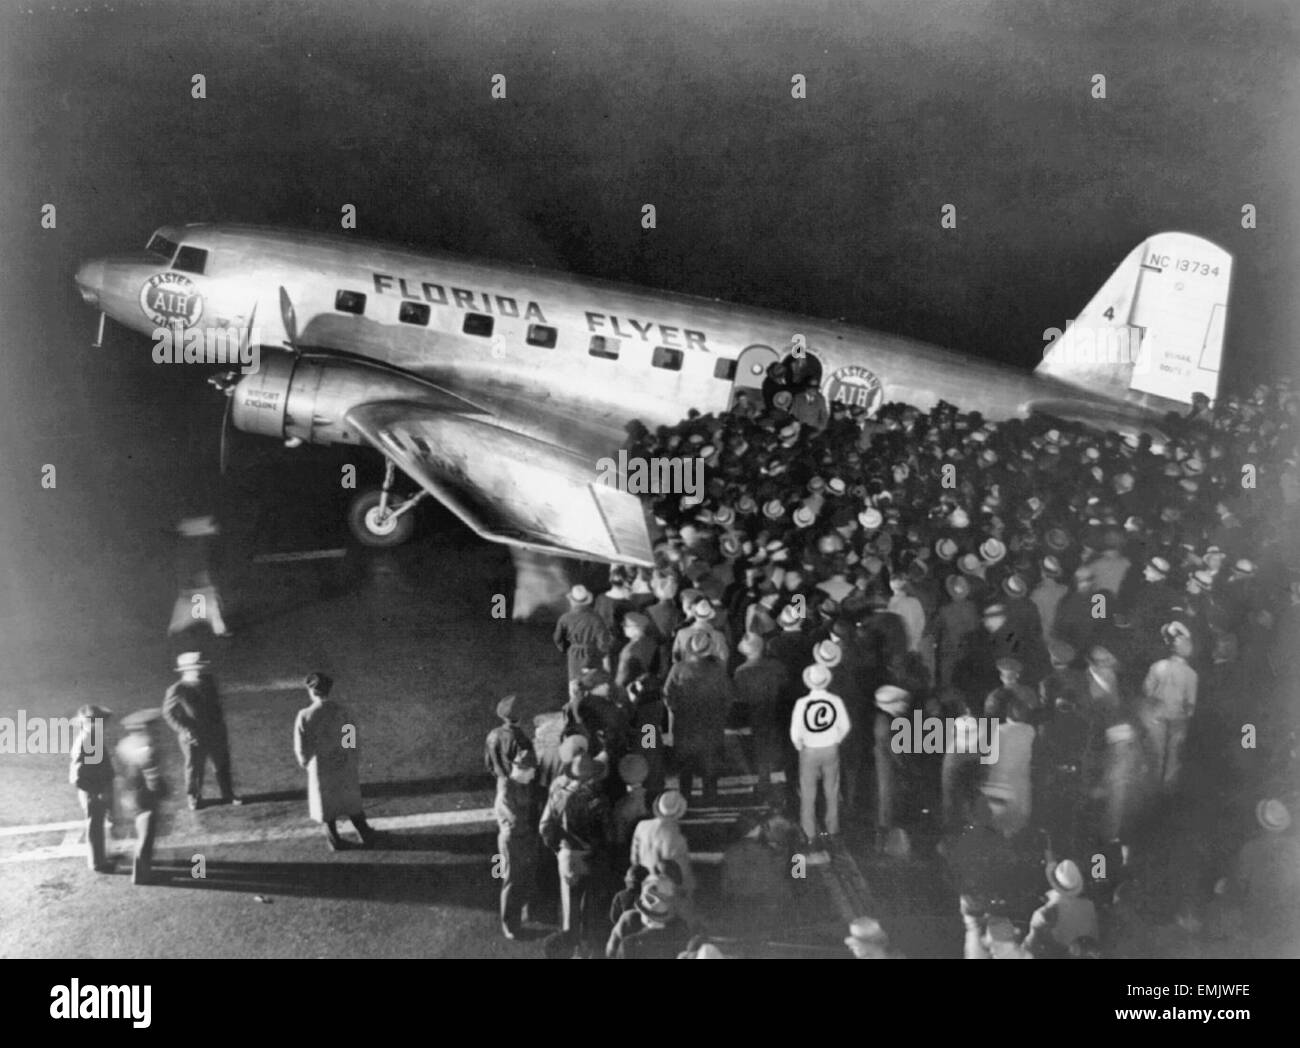 Florida Flyer arrives at Newark Airport  1934 - Stock Image